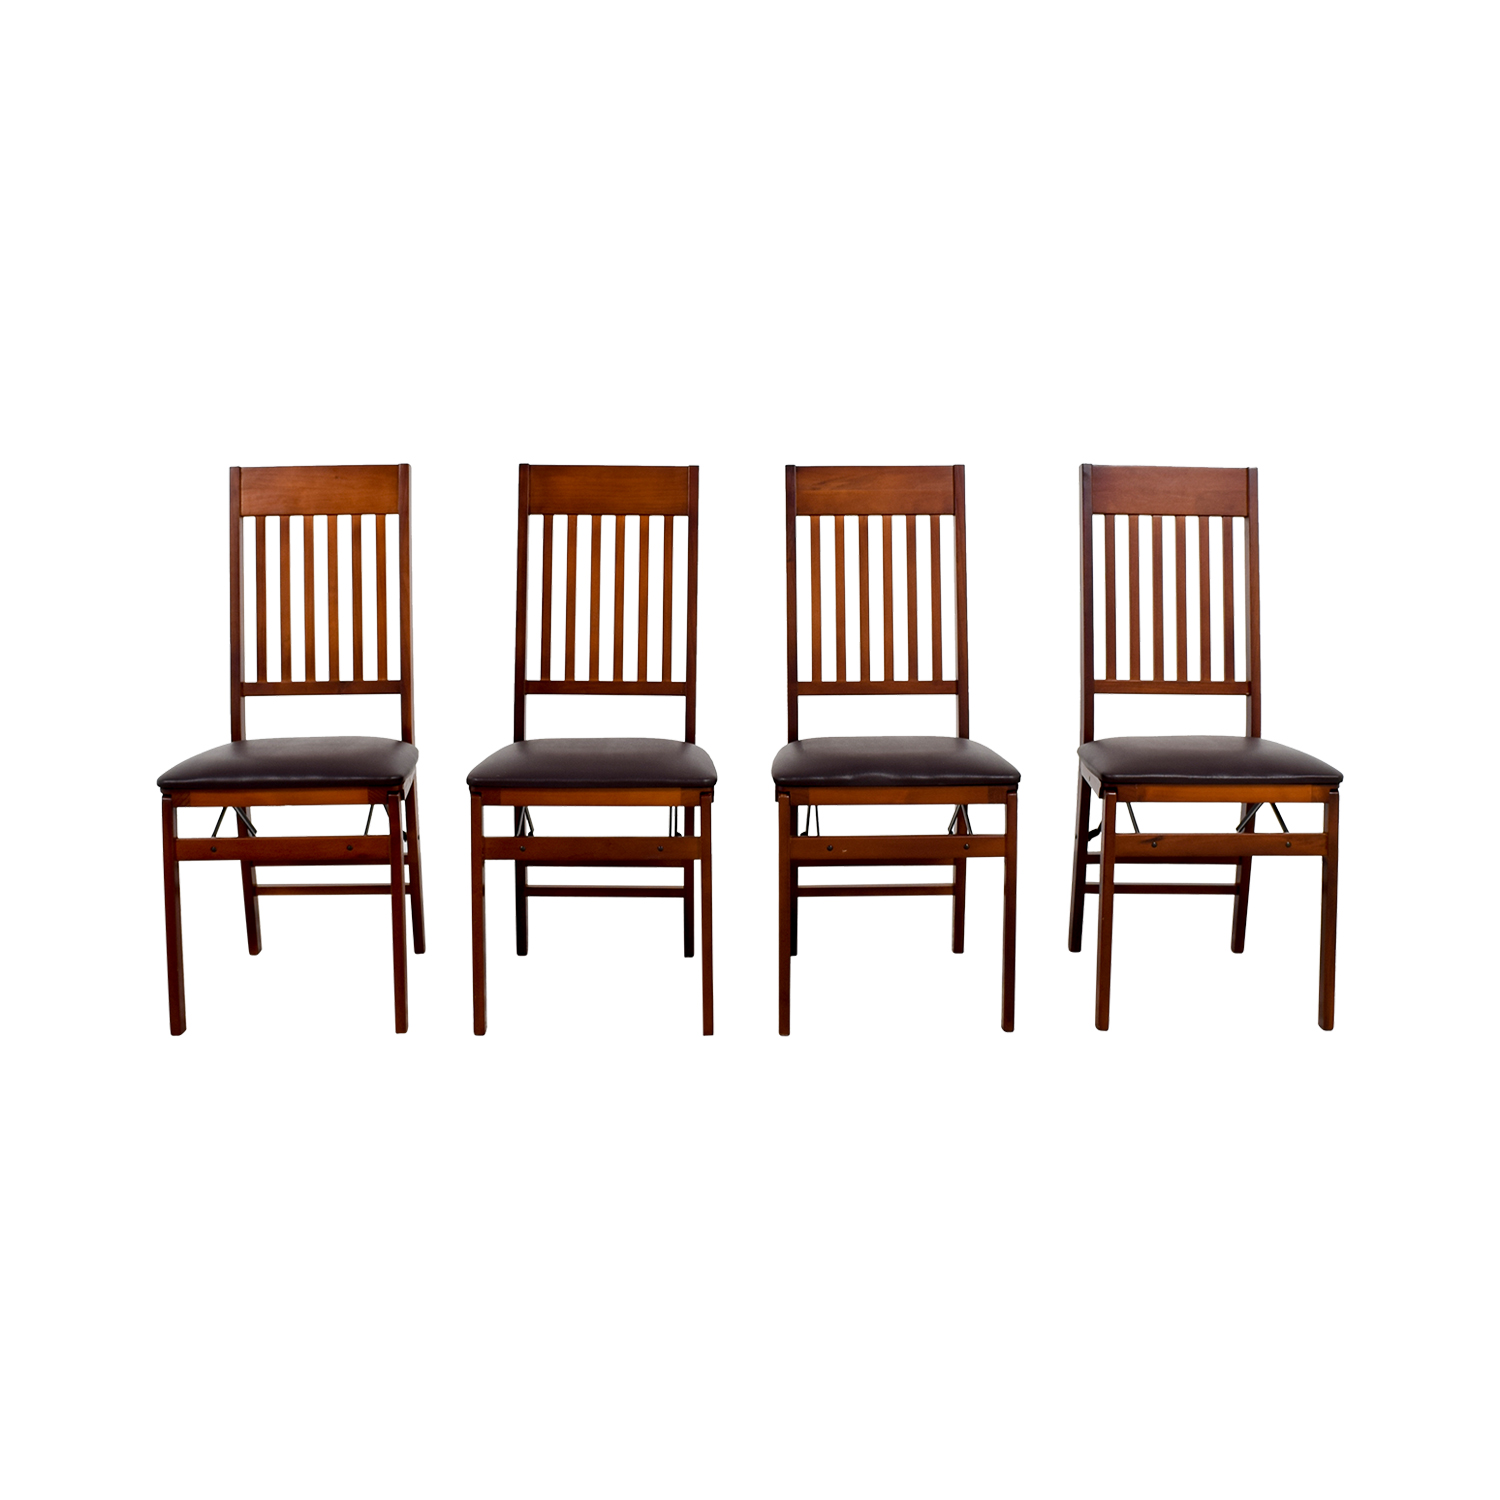 Bed Bath and Beyond Bed Bath and Beyond Brown Folding Chairs used